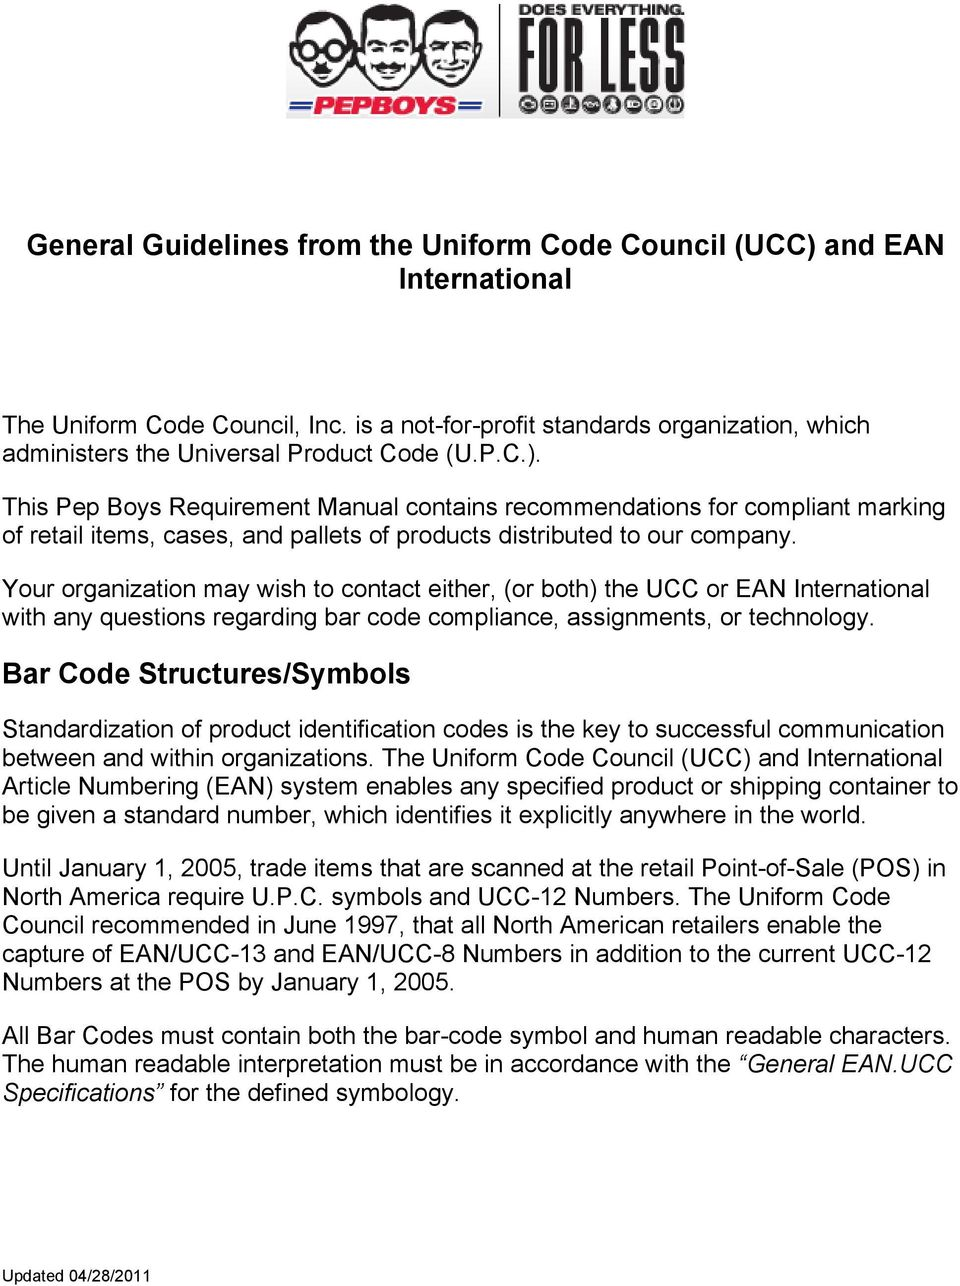 Your organization may wish to contact either, (or both) the UCC or EAN International with any questions regarding bar code compliance, assignments, or technology.